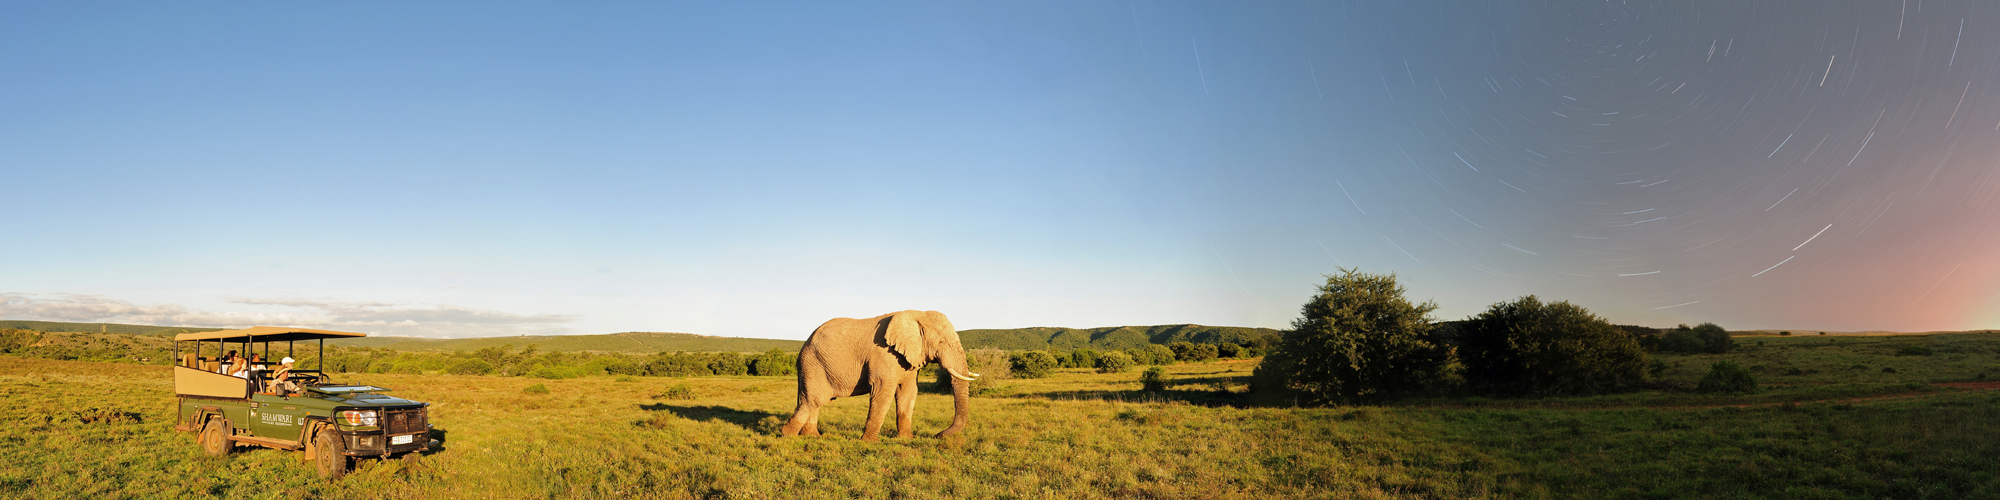 elephant game drive background resize